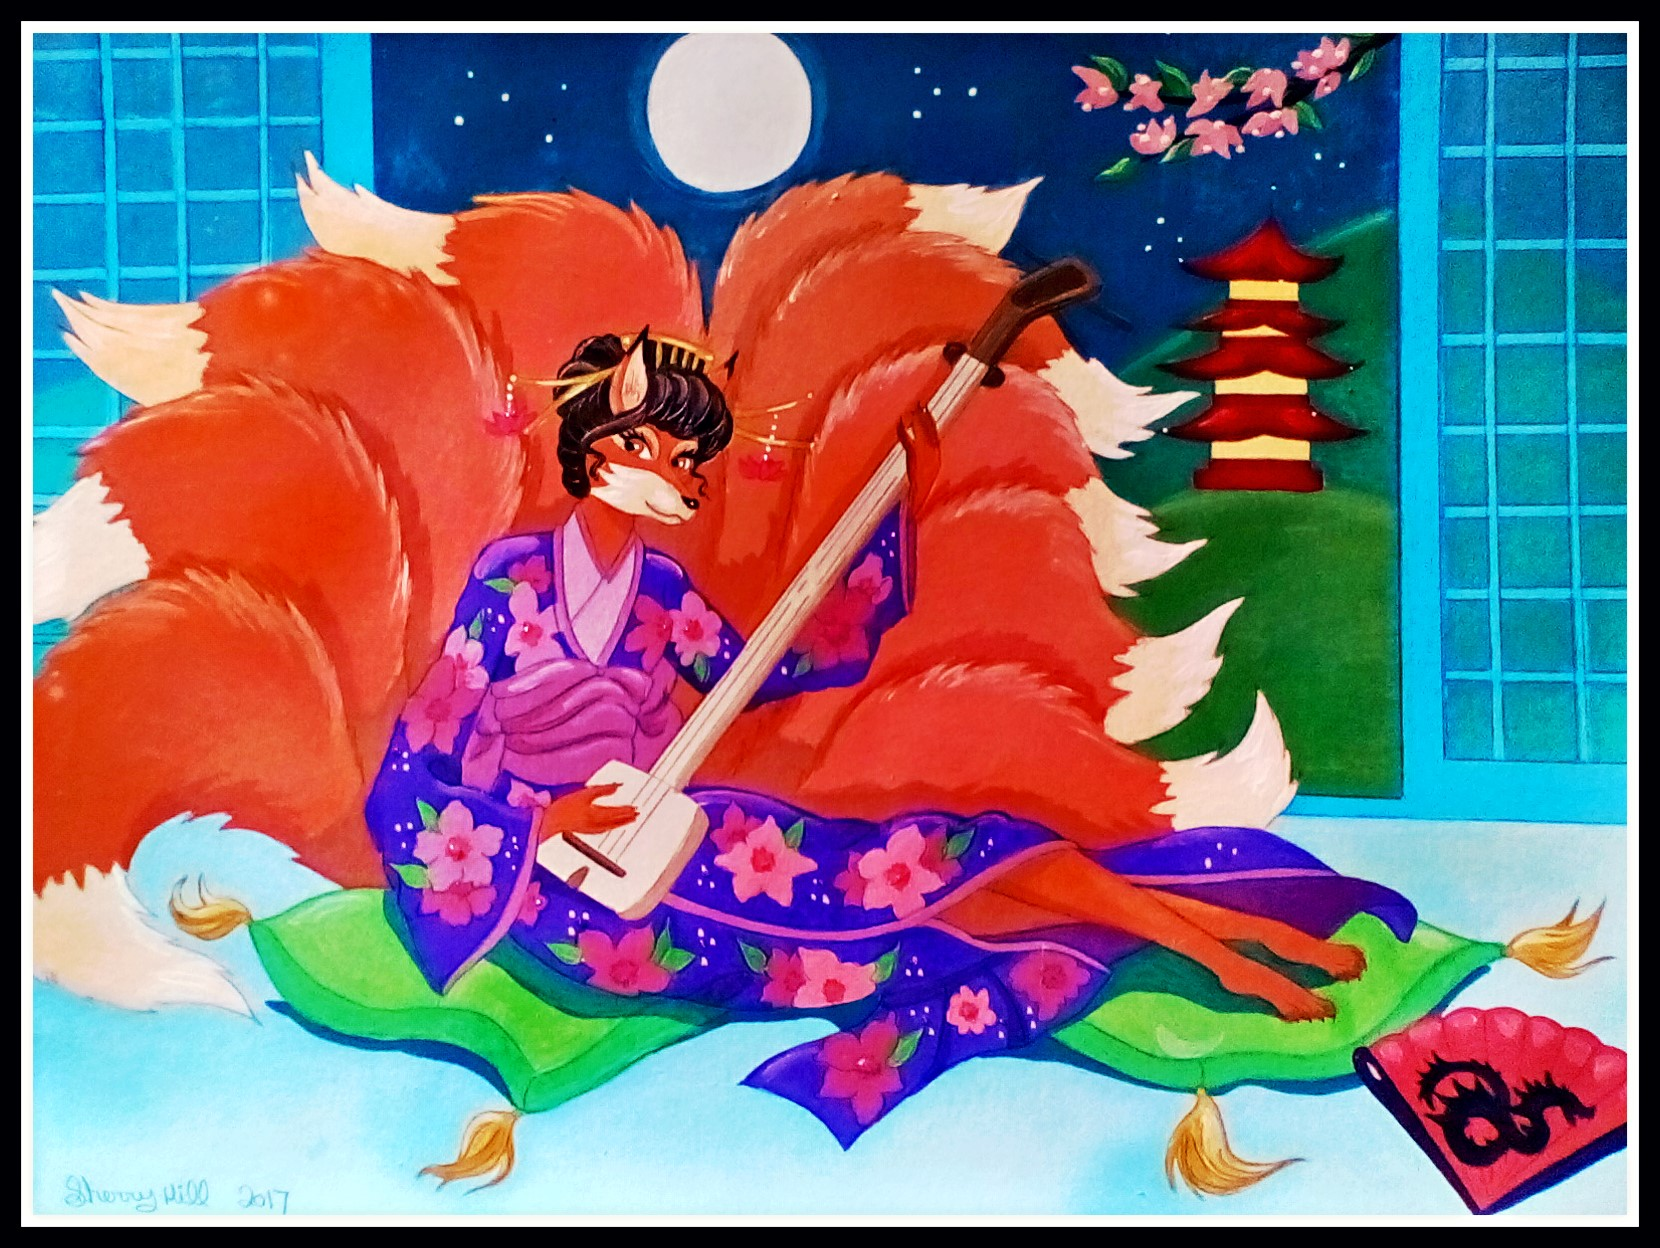 Shamisen Kitsune by FoxyFlapper